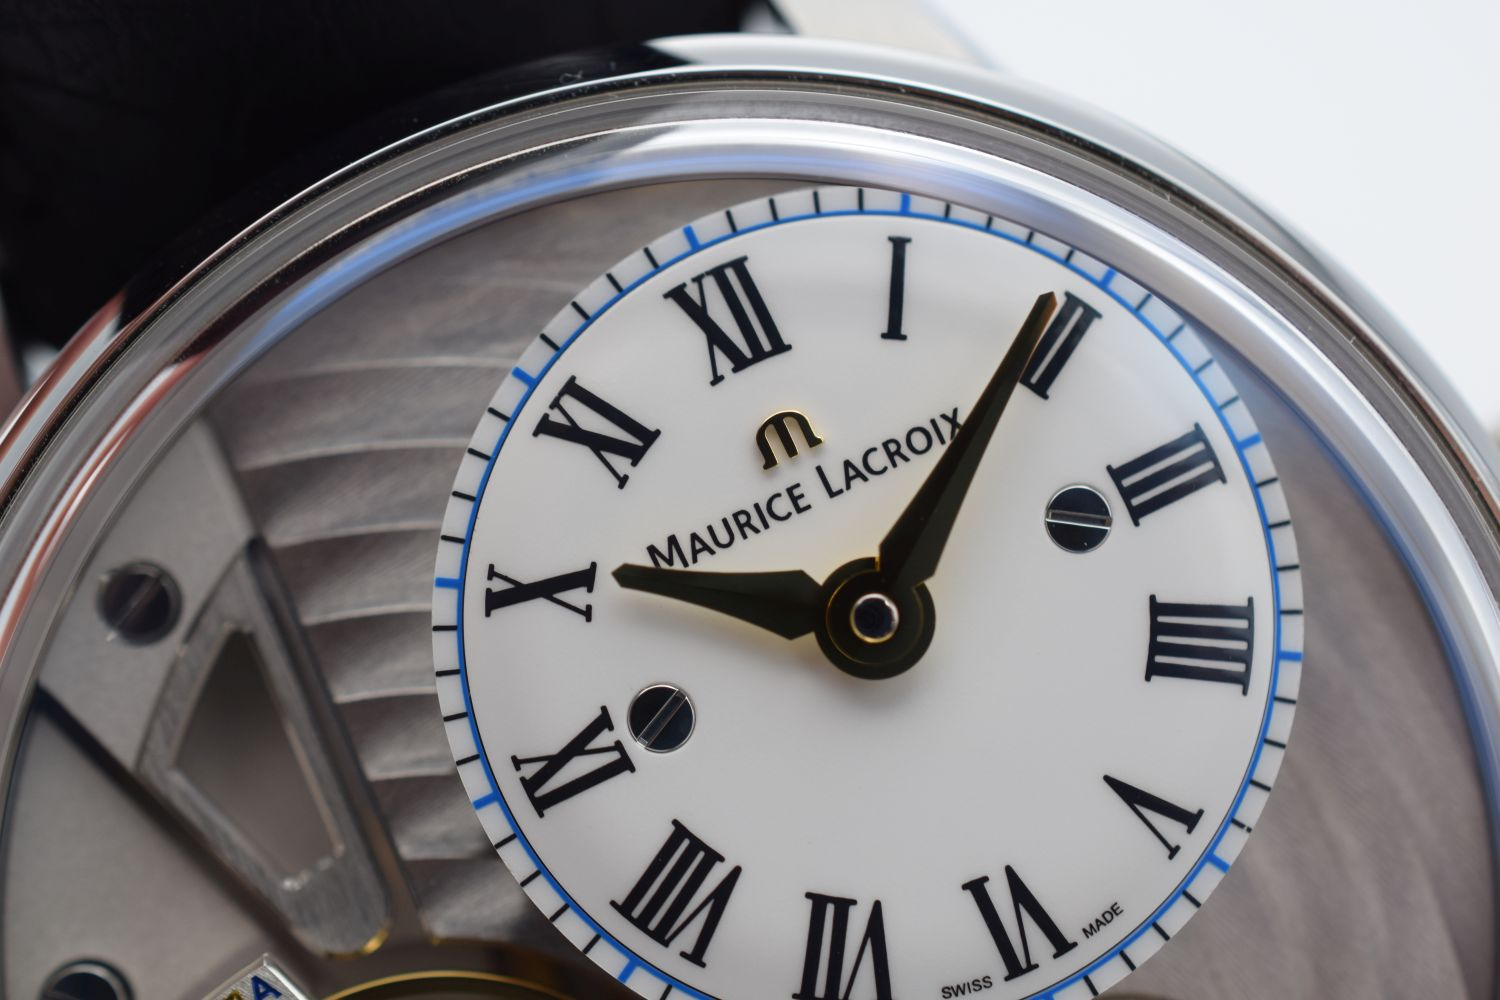 GENTLEMAN'S MAURICE LACROIX MATERPIECE GRAVITY LIMITED EDITION, AUTOMATIC MANUFACTURE ML230, - Image 6 of 8